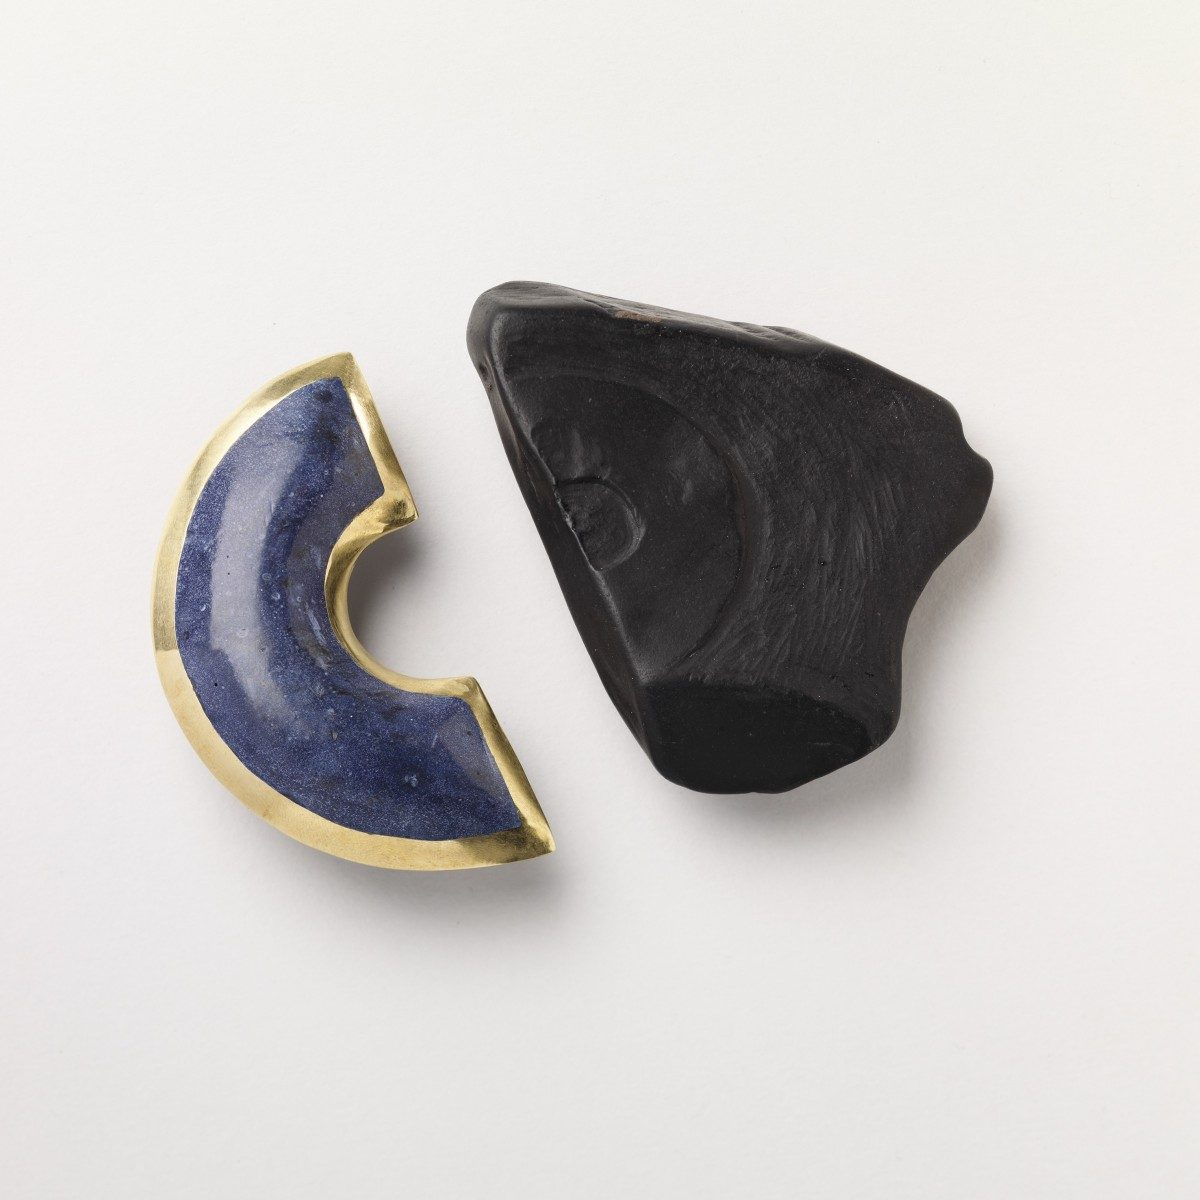 Caitlin Hegney - Azure Brooch and Woad Brooch, brass, jesmonite, oxidised silver, jet.